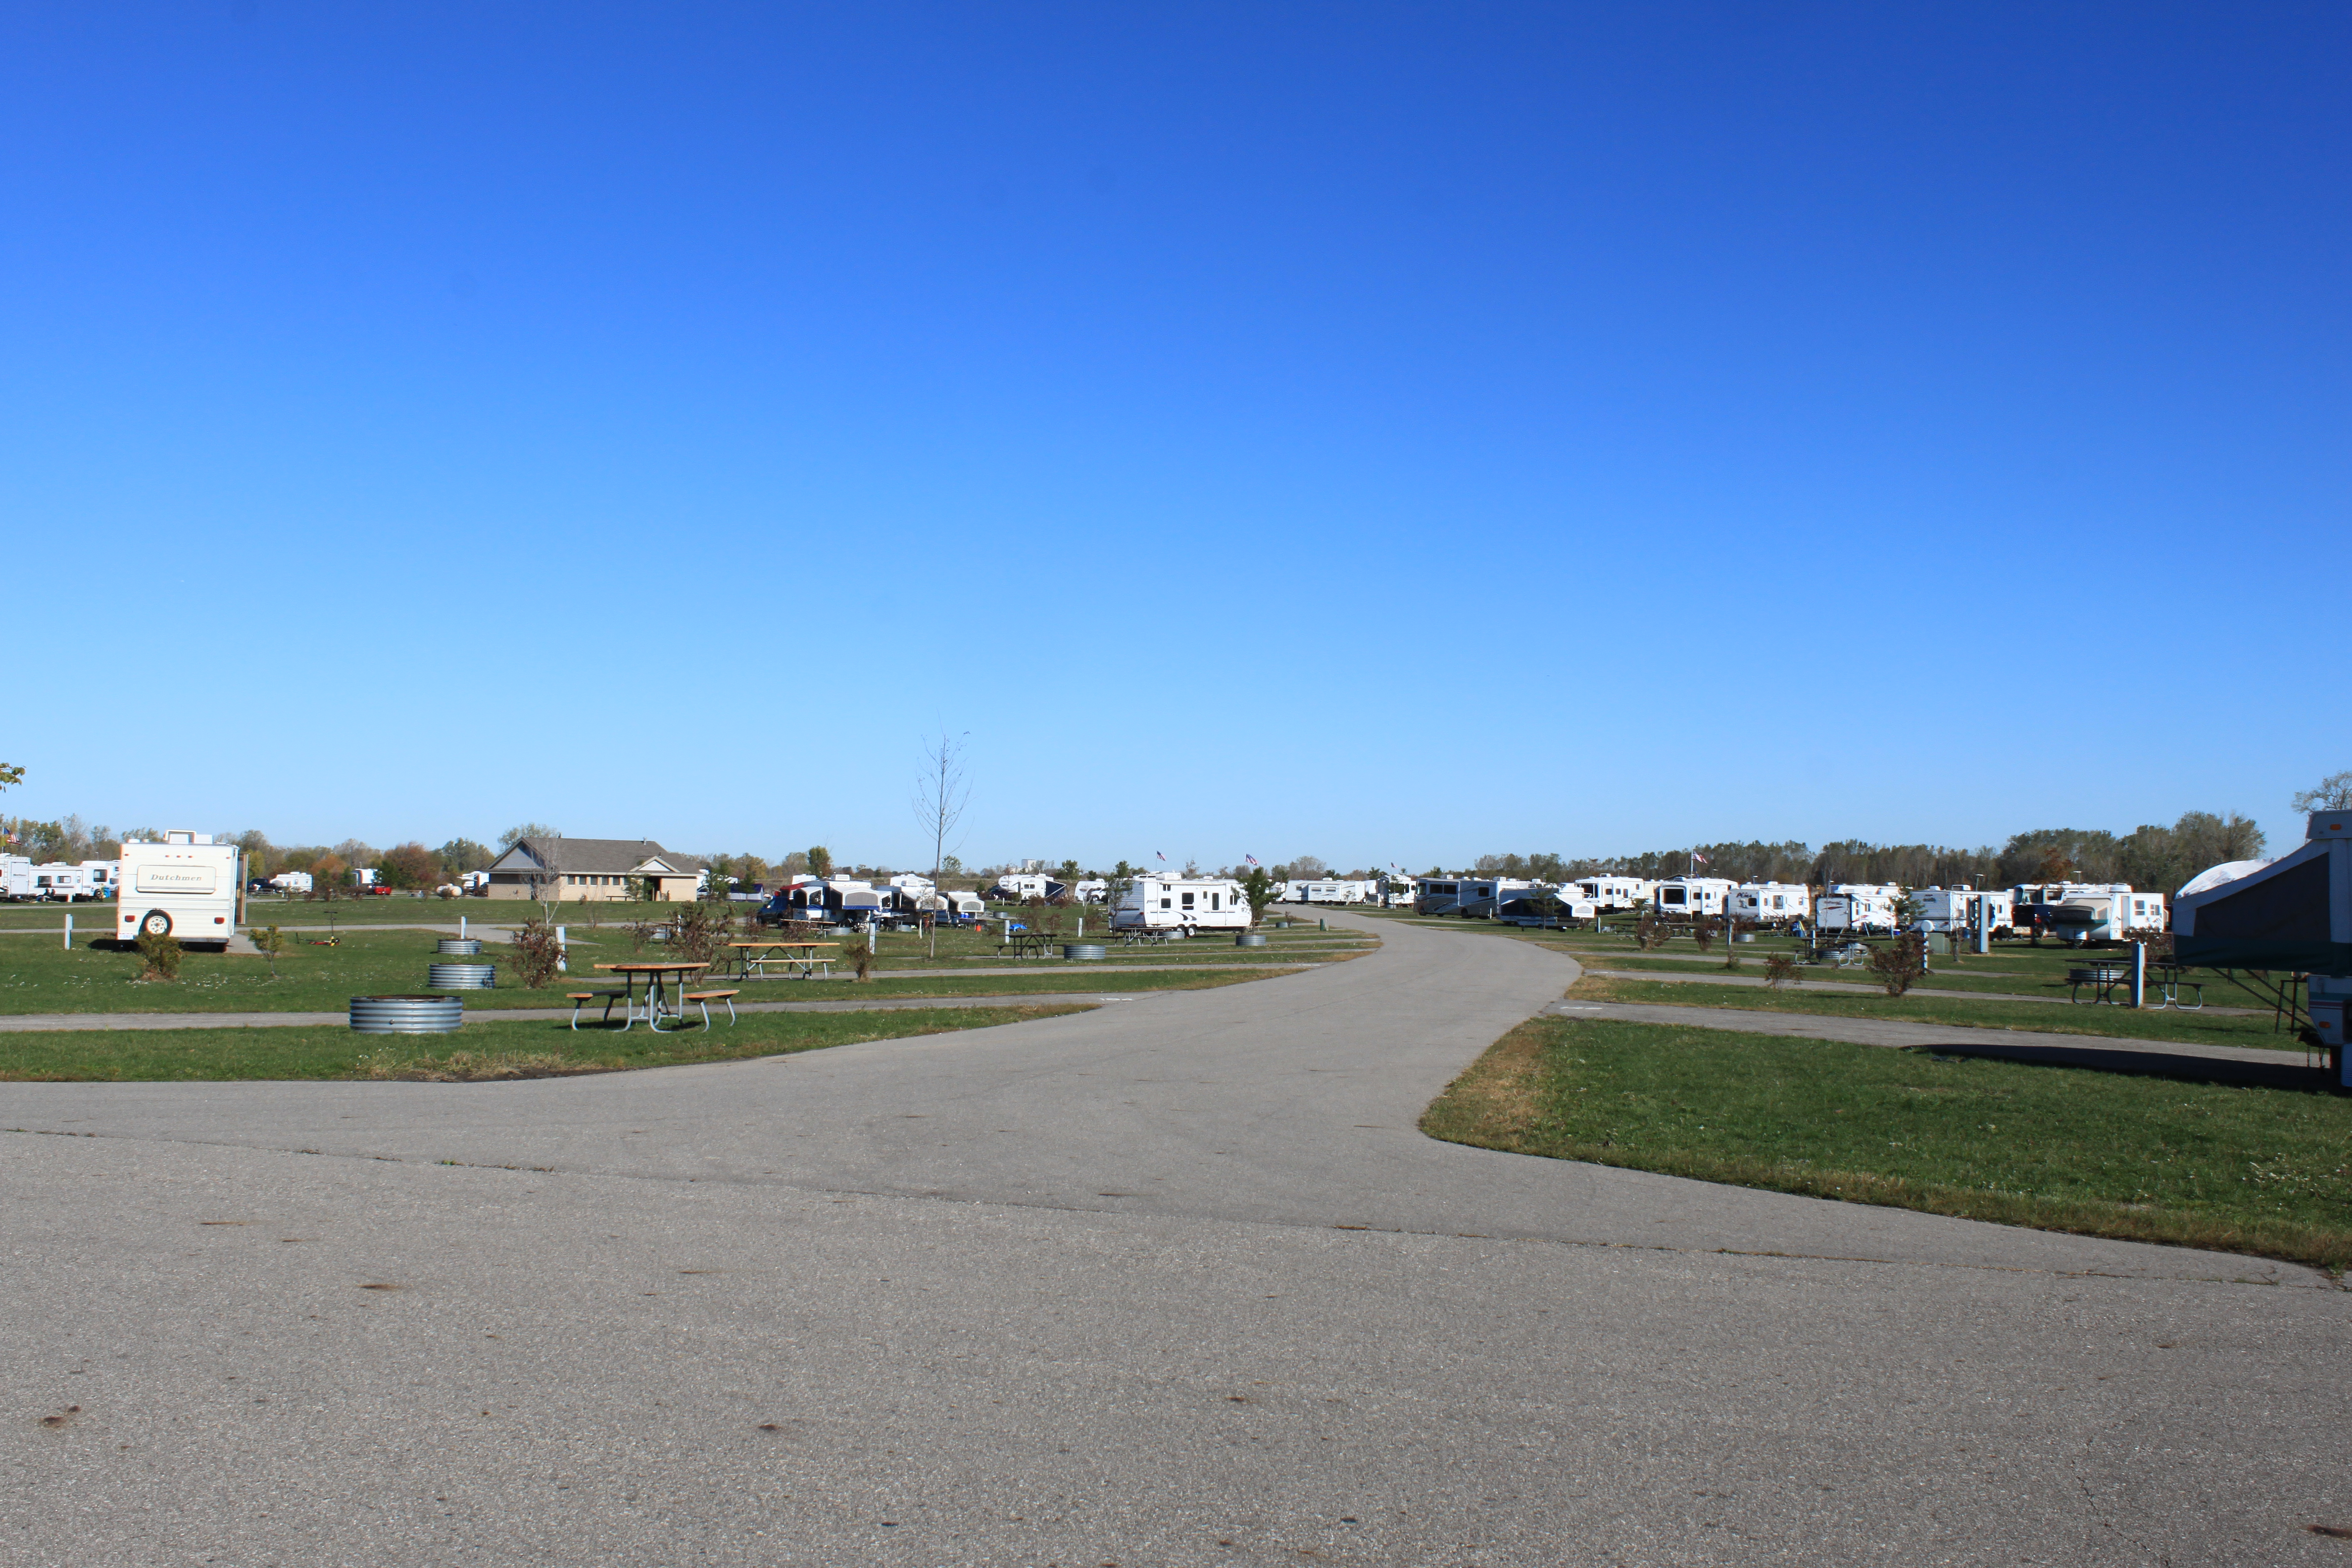 Camping Parks On Doliver St In Pismo Beach California